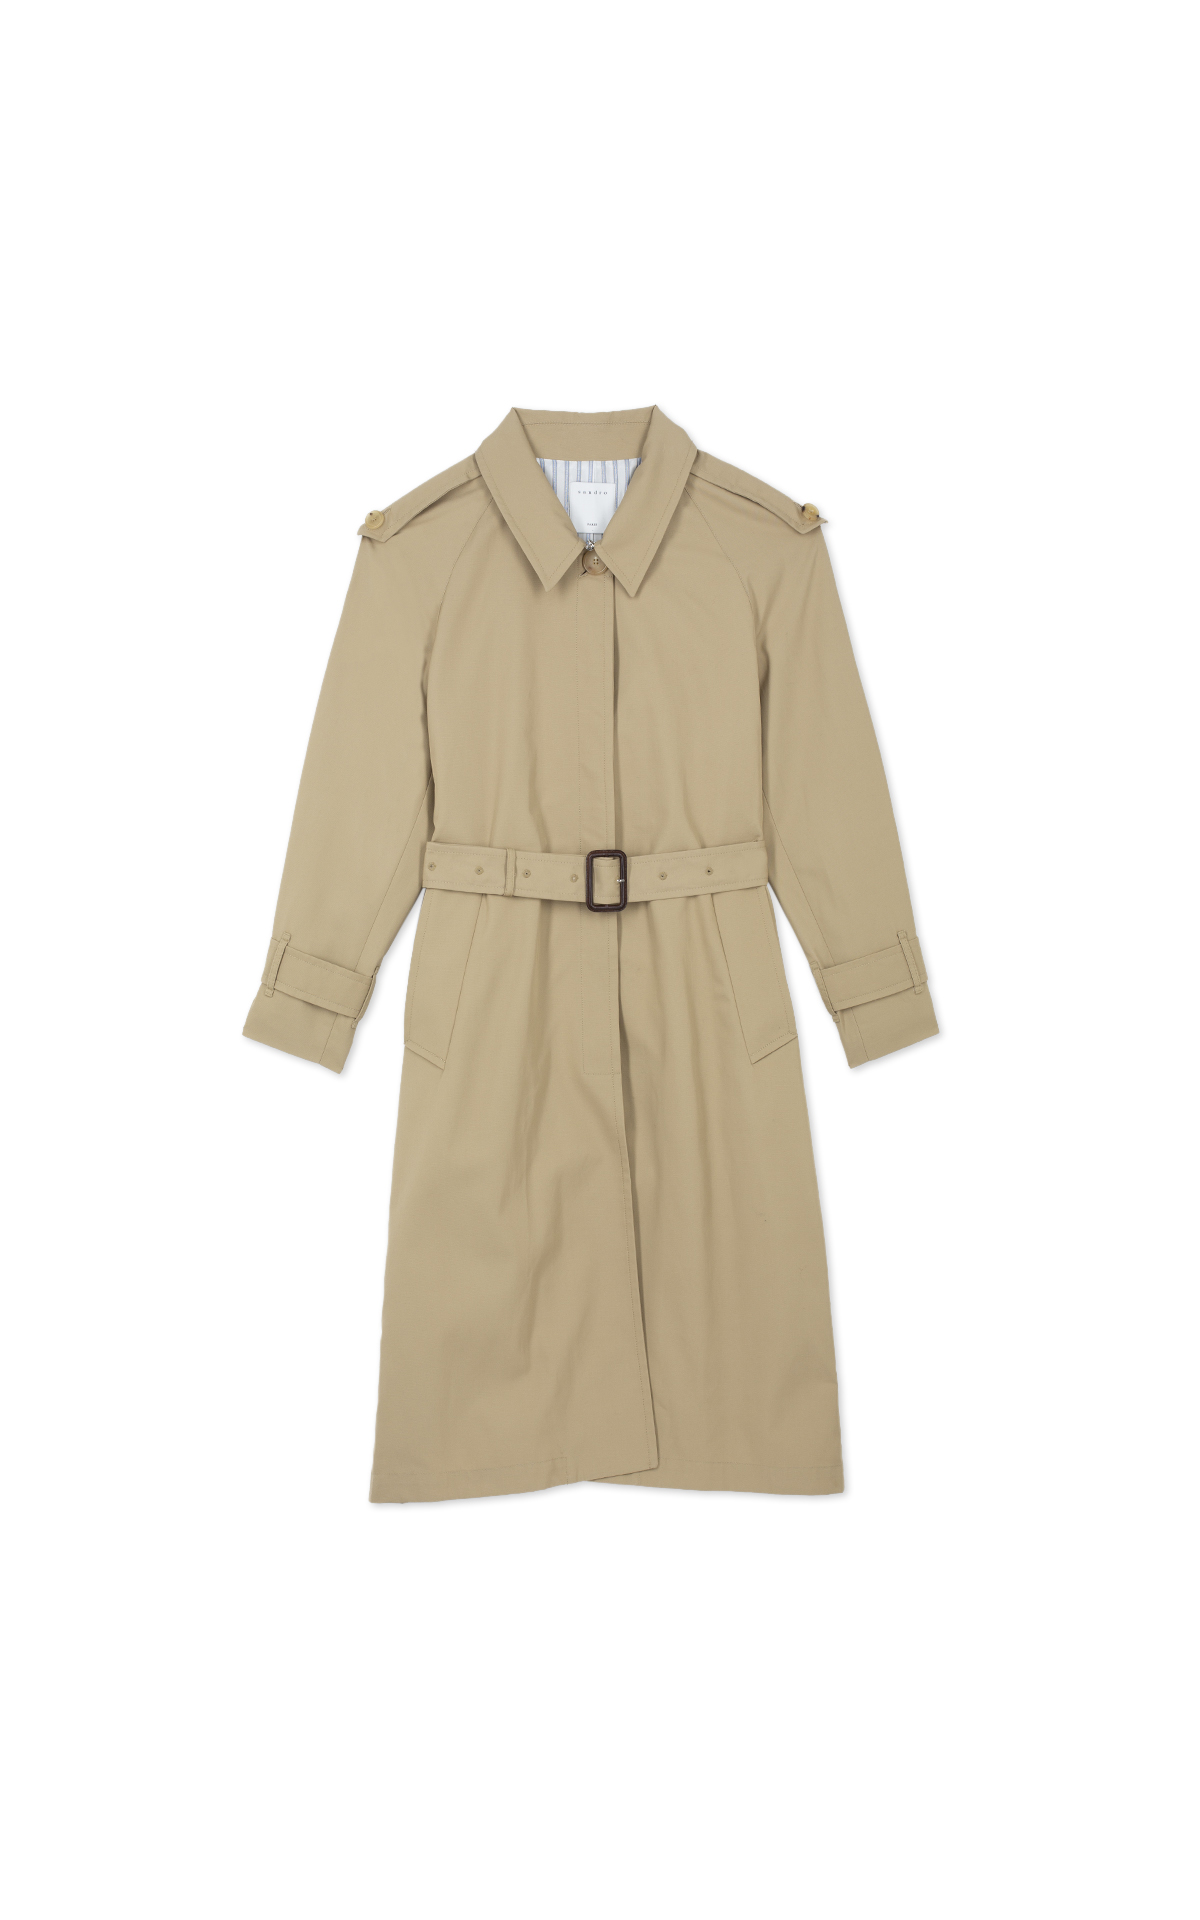 Sandro Women's beige trench coat